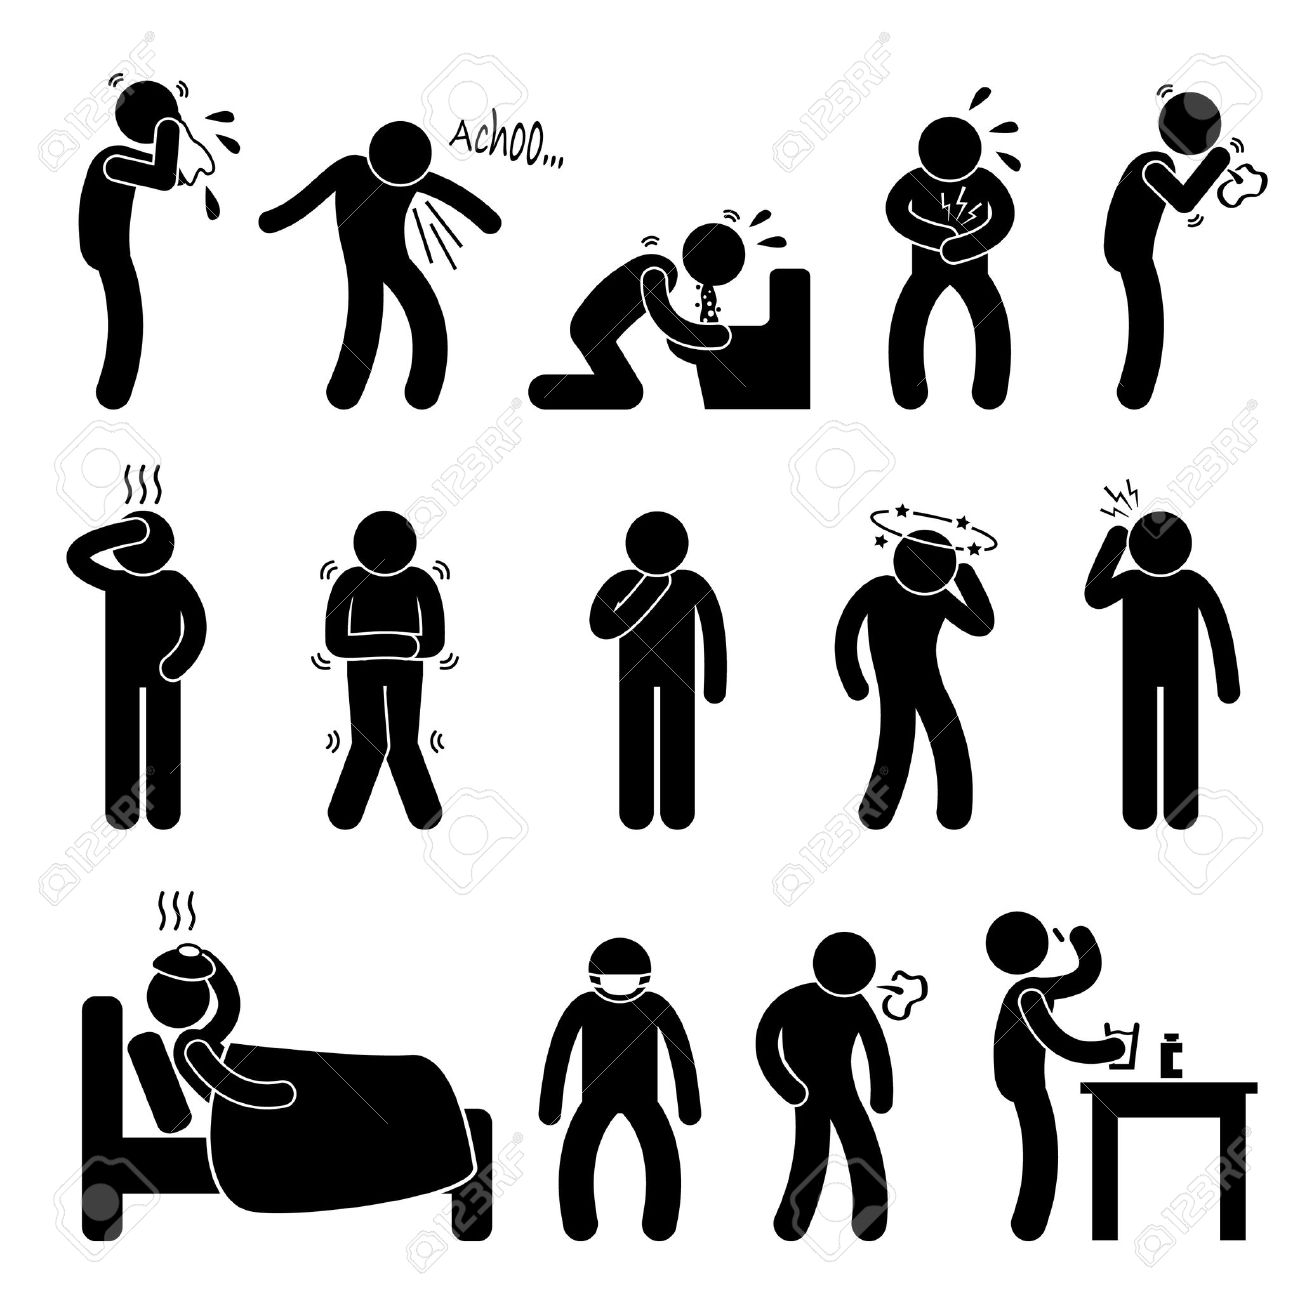 Sick Ill Fever Flu Cold Sneeze Cough Vomit Disease Stick Figure.